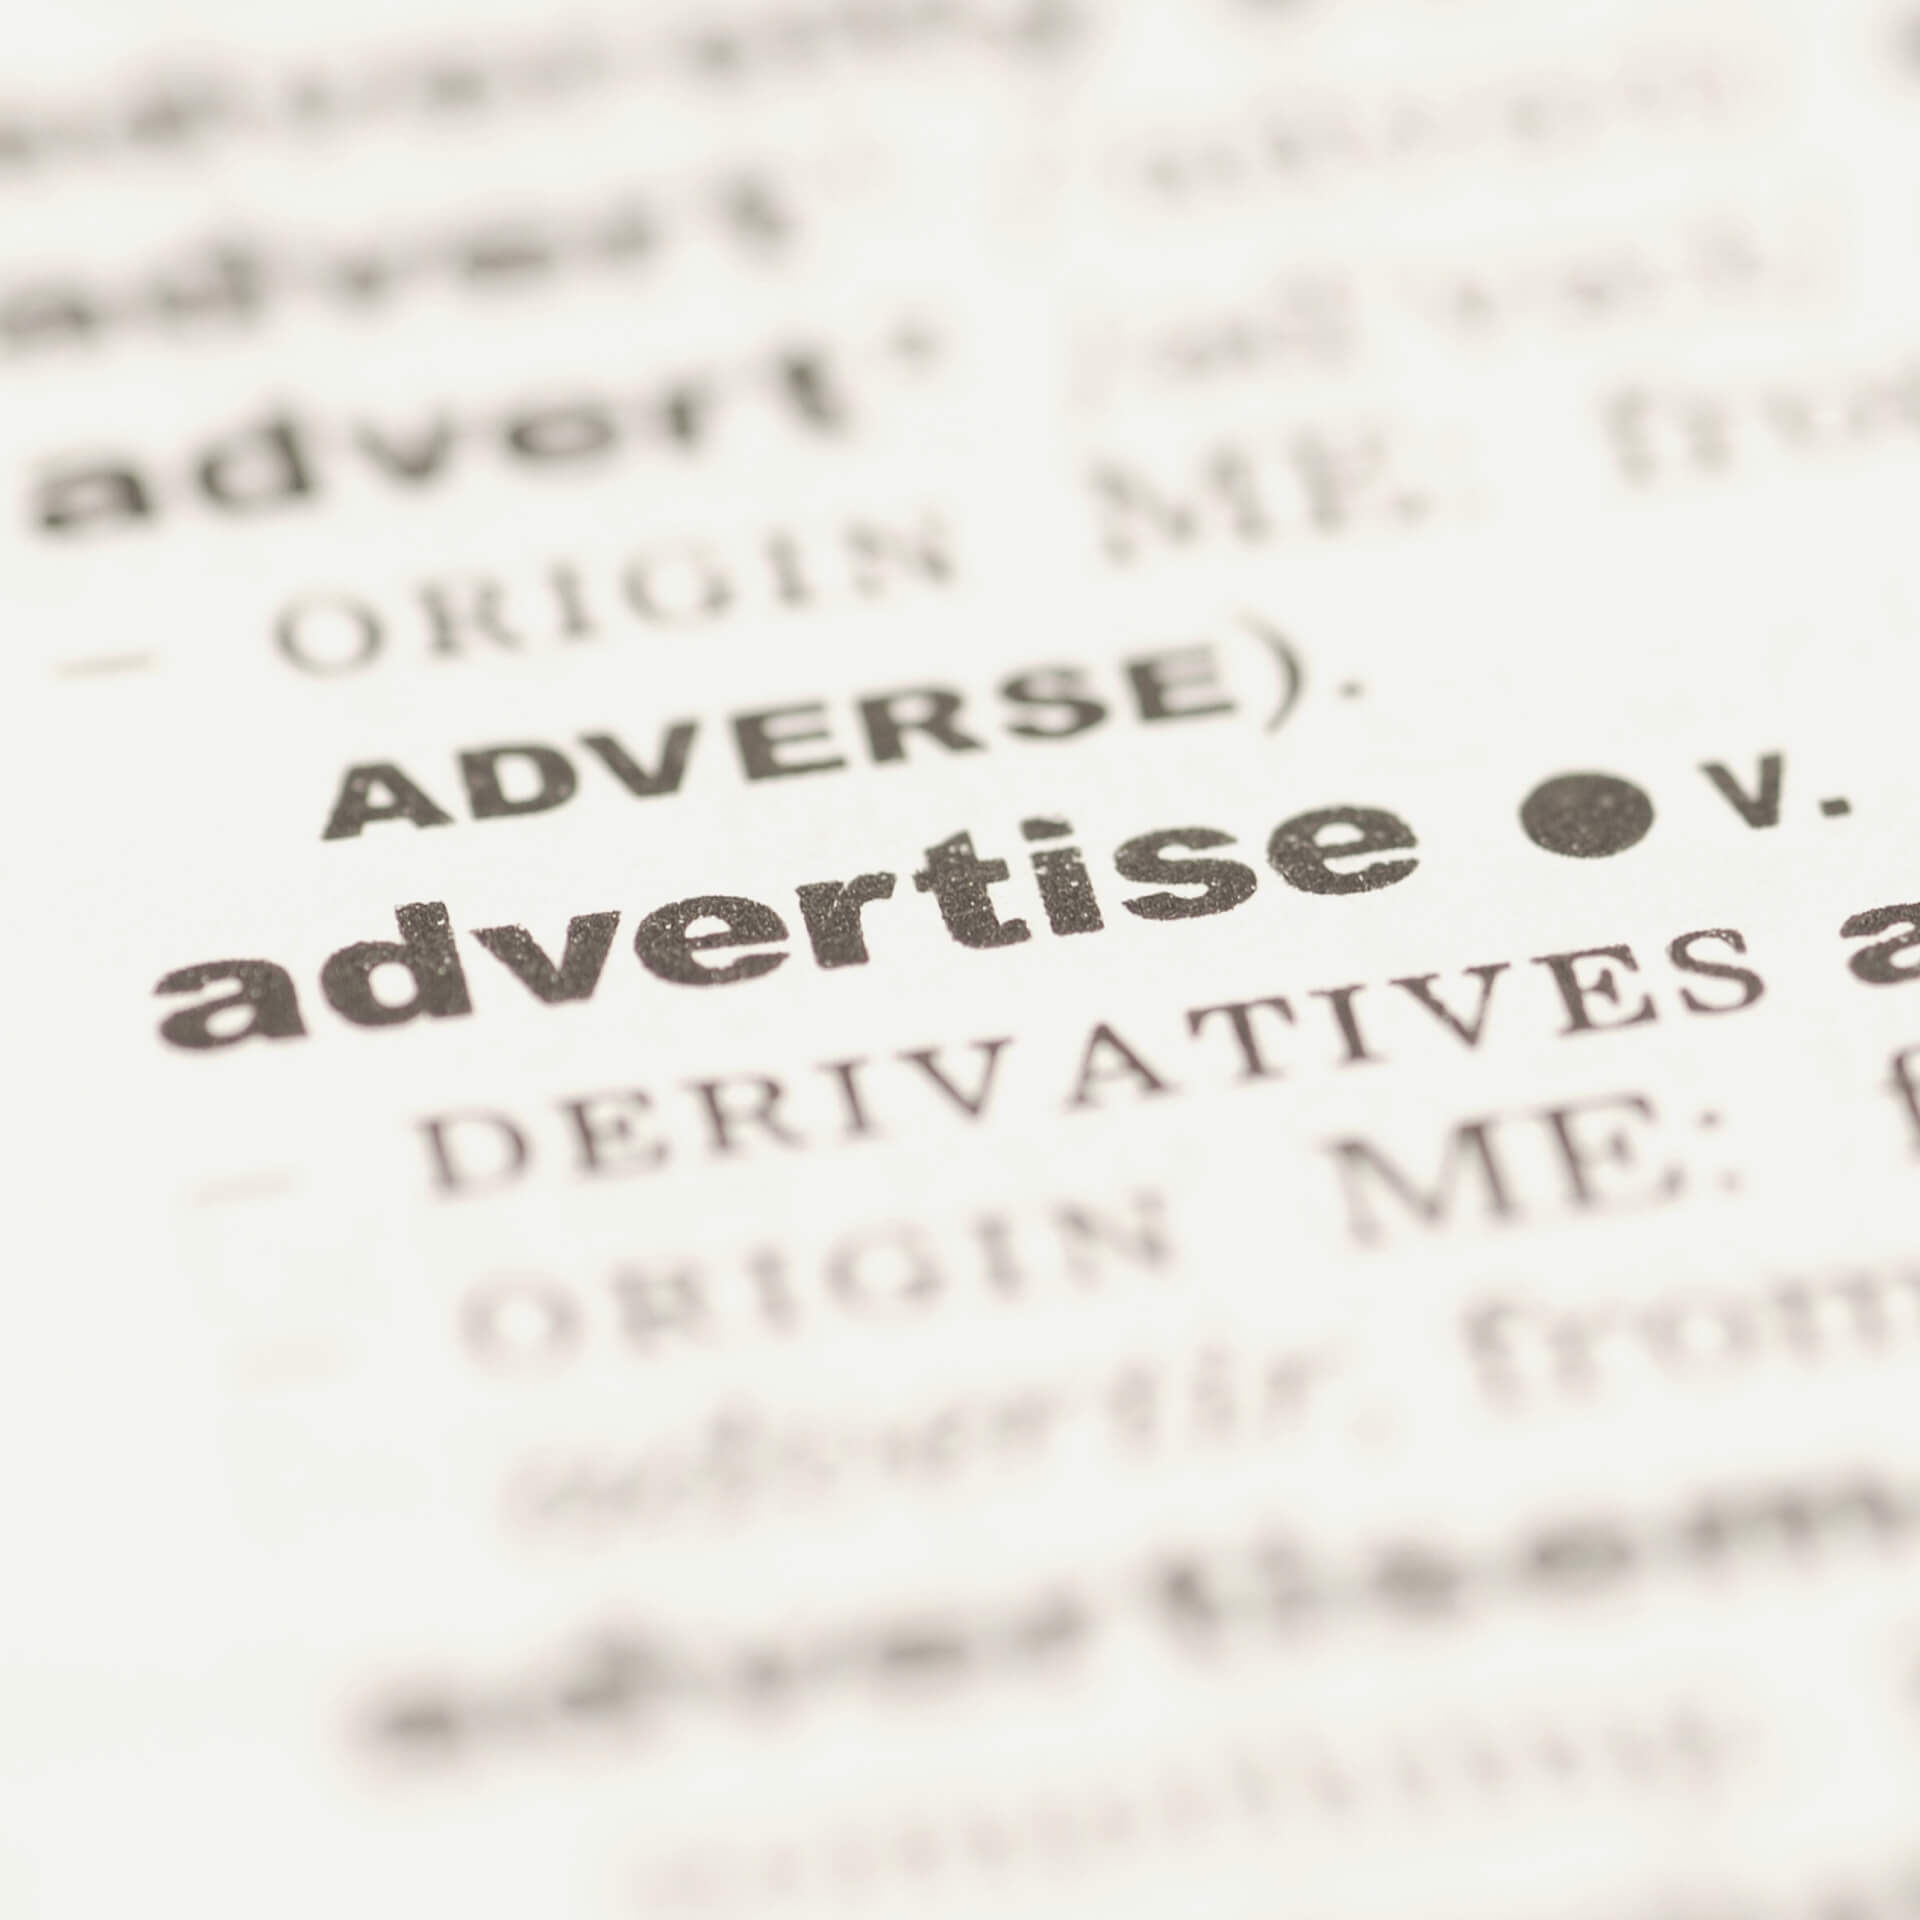 Advertising Strategies: dictionary focusing on the word: advertise